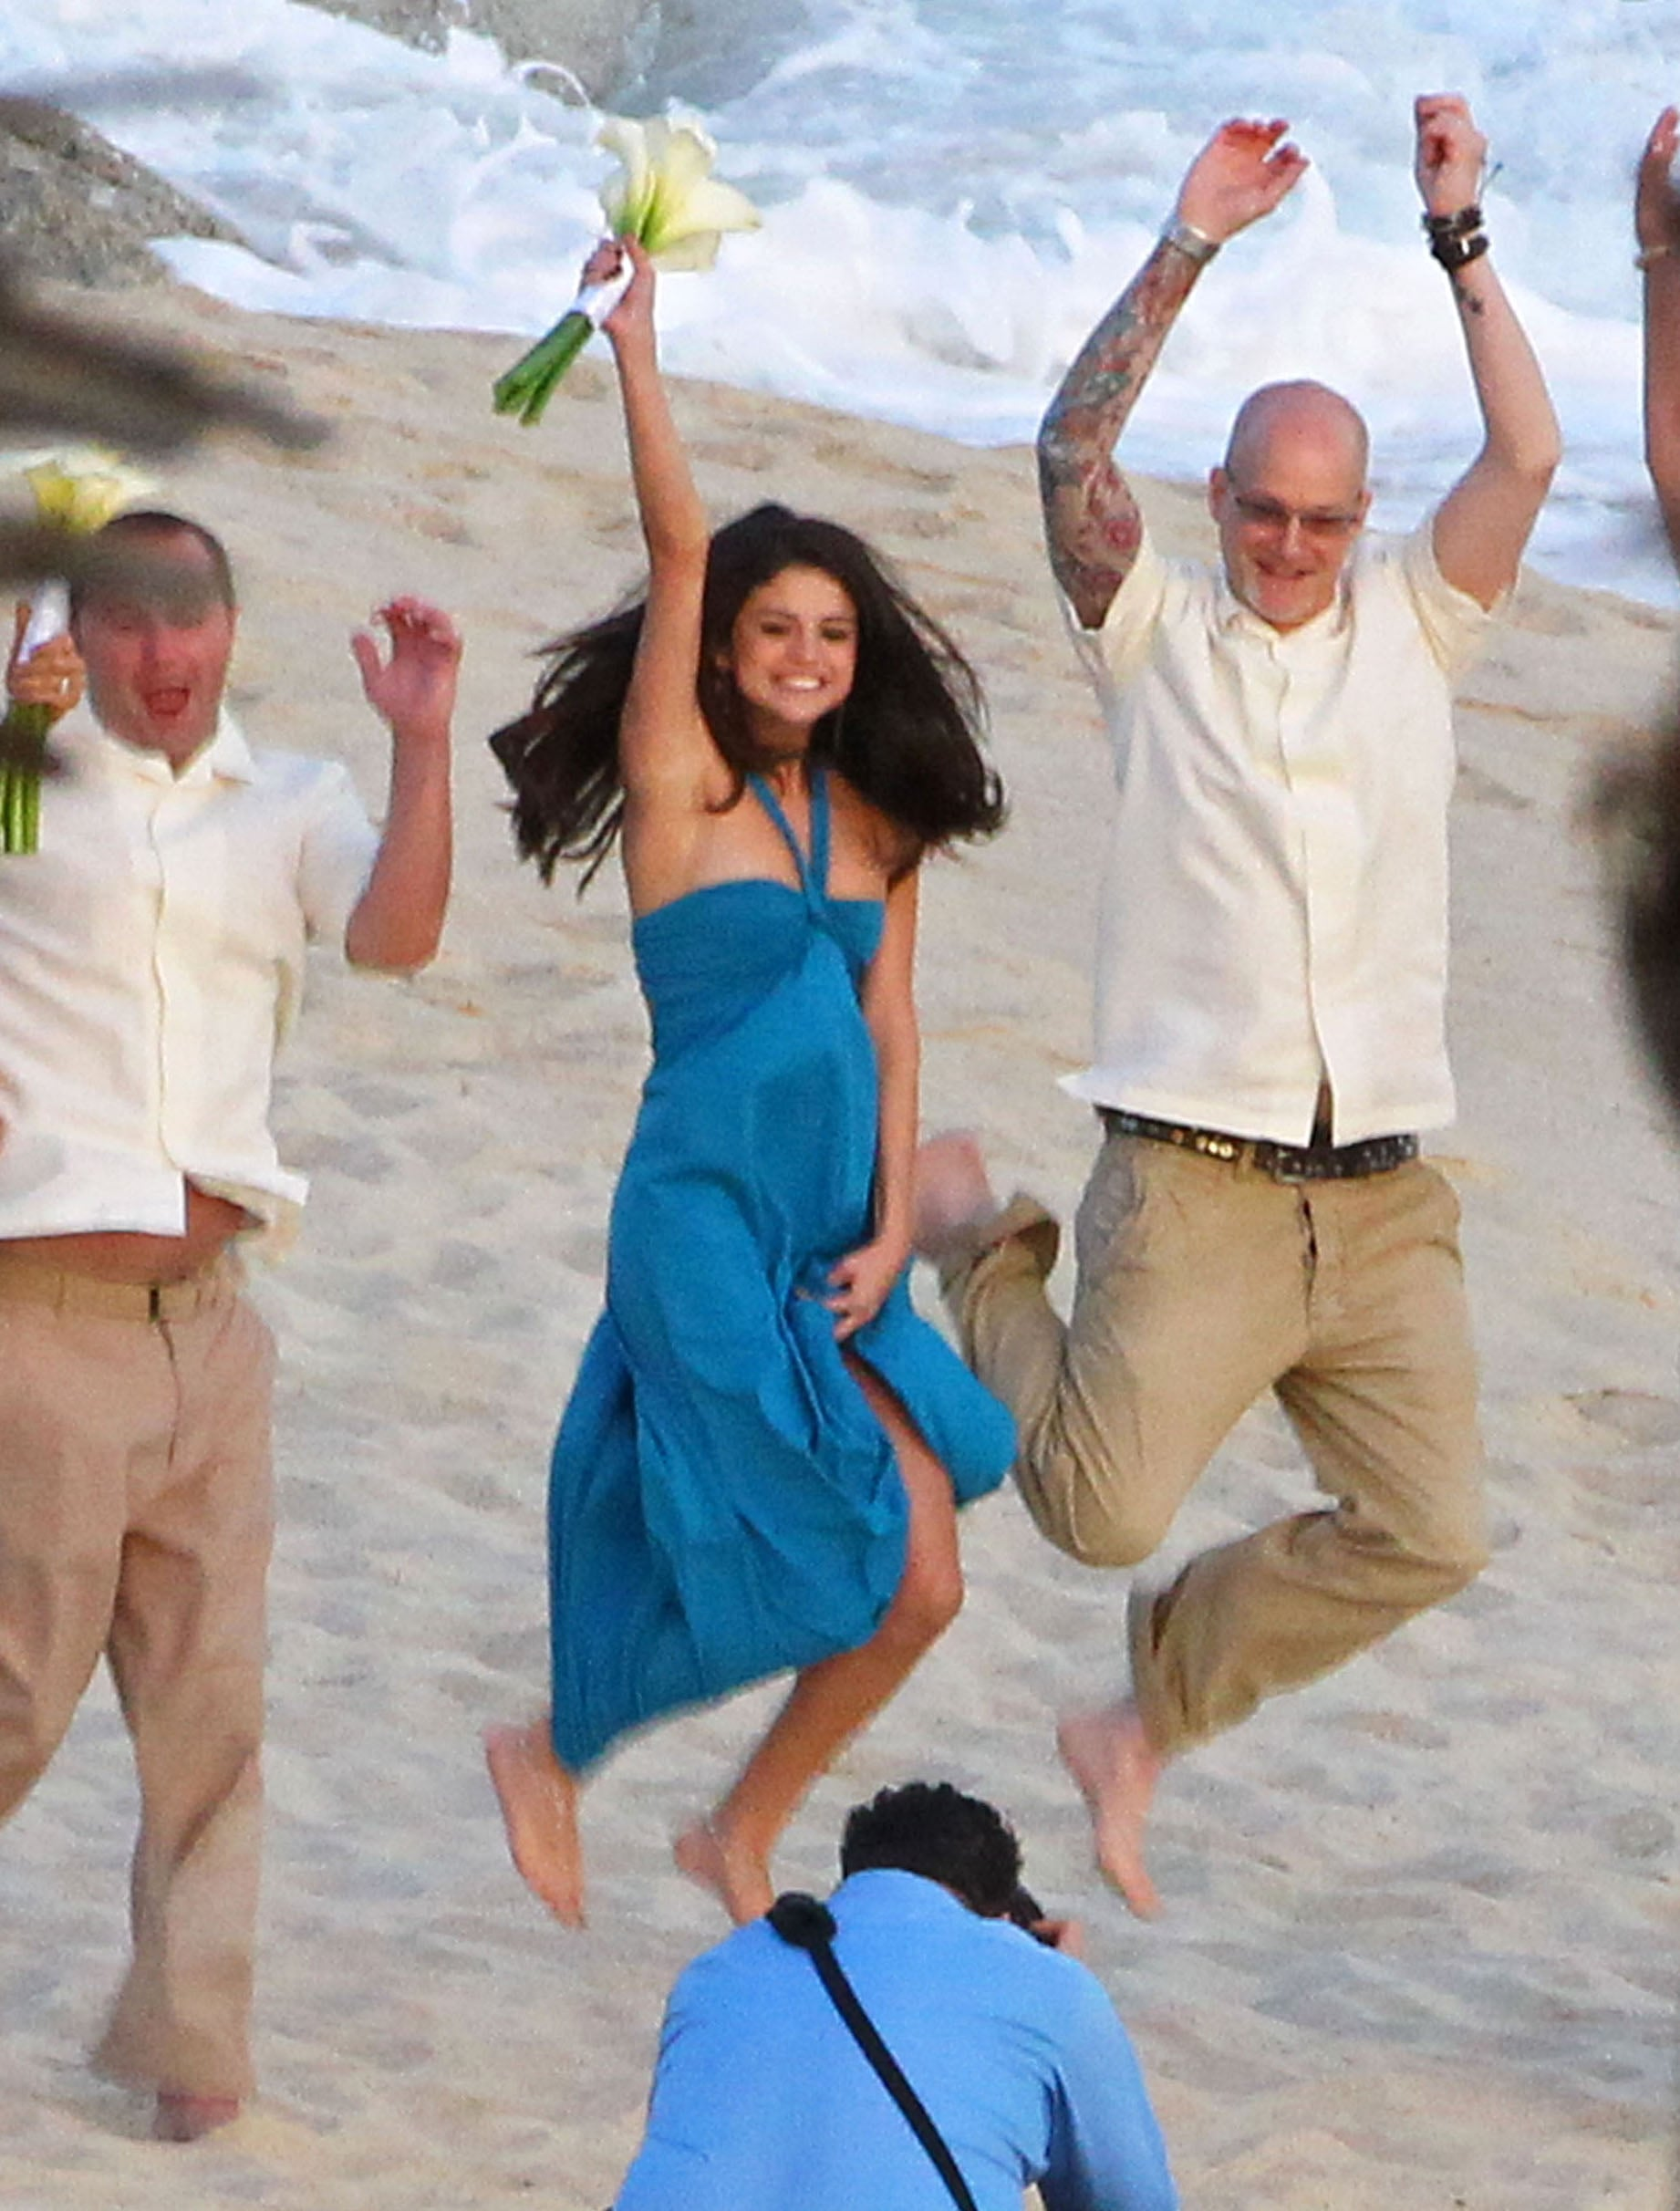 Selena Gomez posed for a photographer at her friend's Mexico beach nuptials in December 2011.